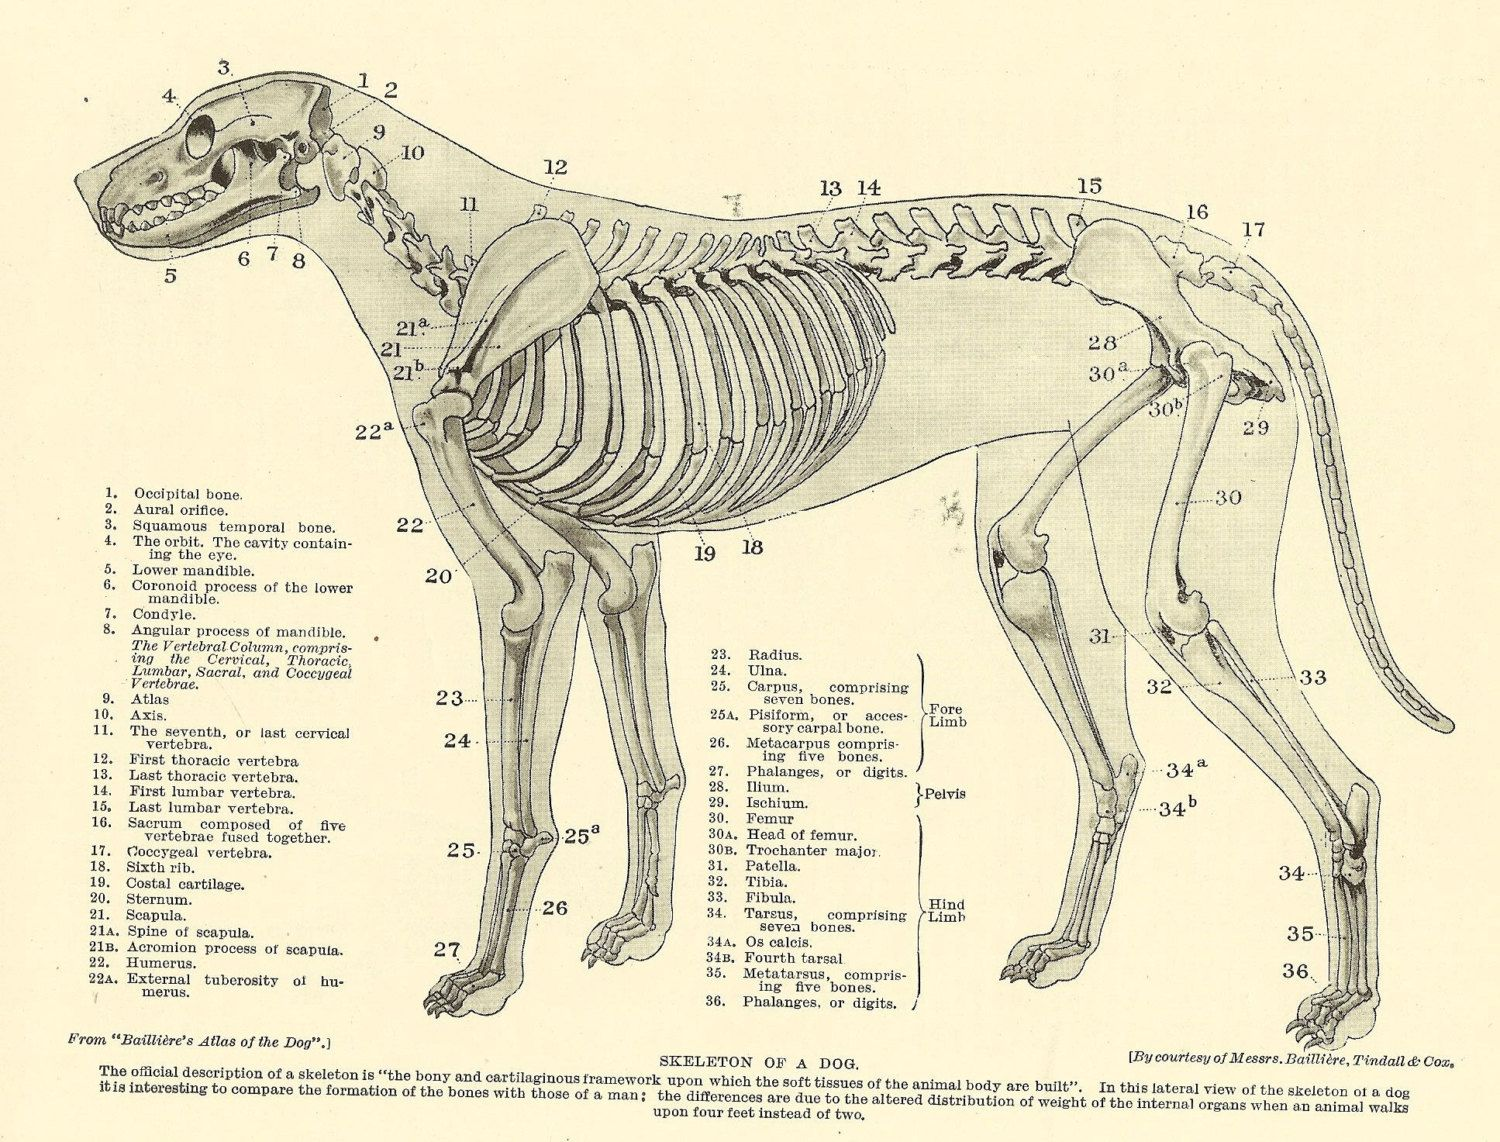 Pin by Lynet Ellerbeck on Pet related | Pinterest | Dog anatomy ...